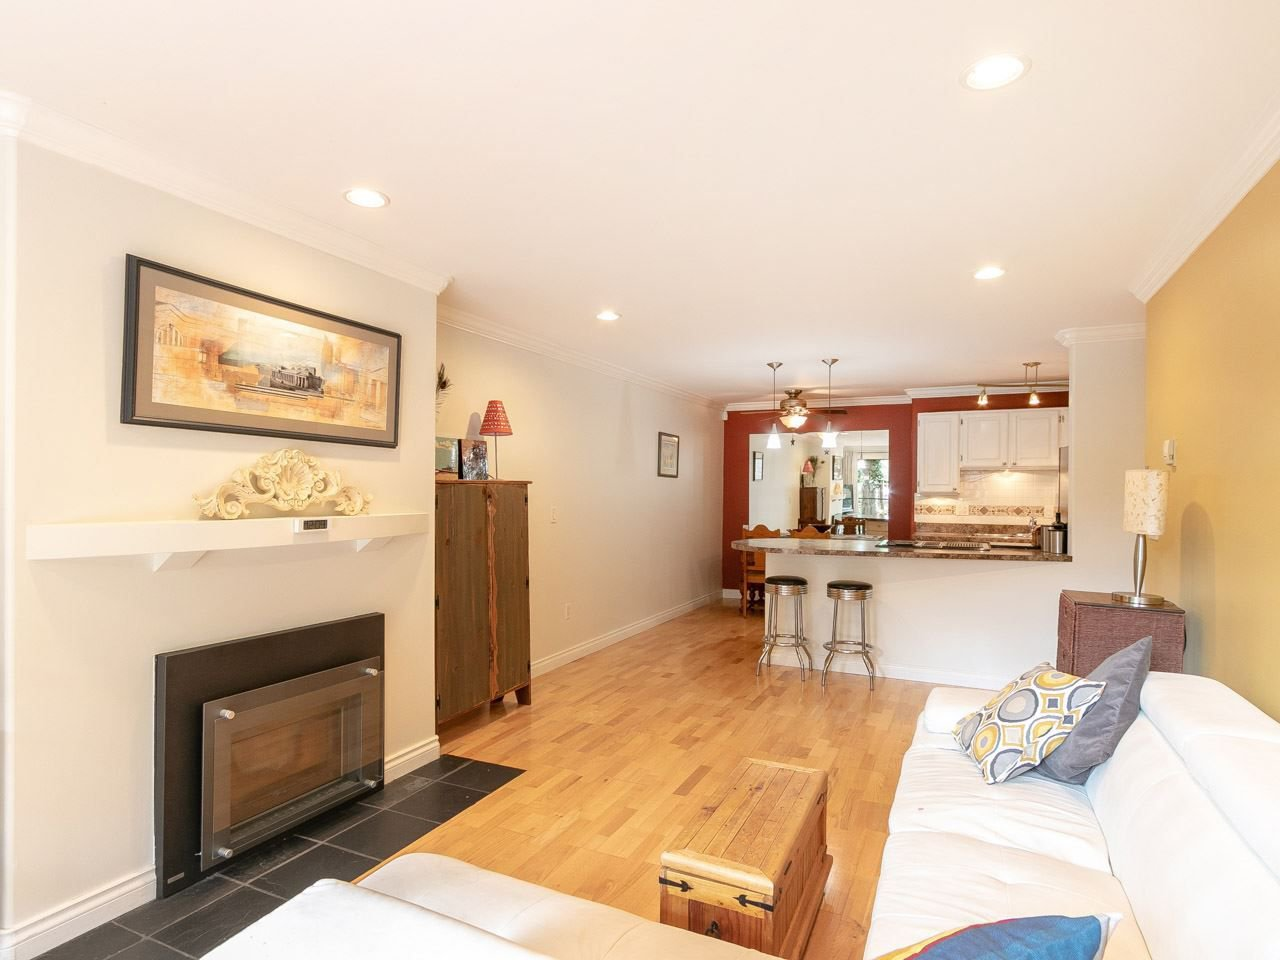 """Photo 5: Photos: 104 1516 CHARLES Street in Vancouver: Grandview VE Condo for sale in """"GARDEN TERRACE"""" (Vancouver East)  : MLS®# R2295886"""